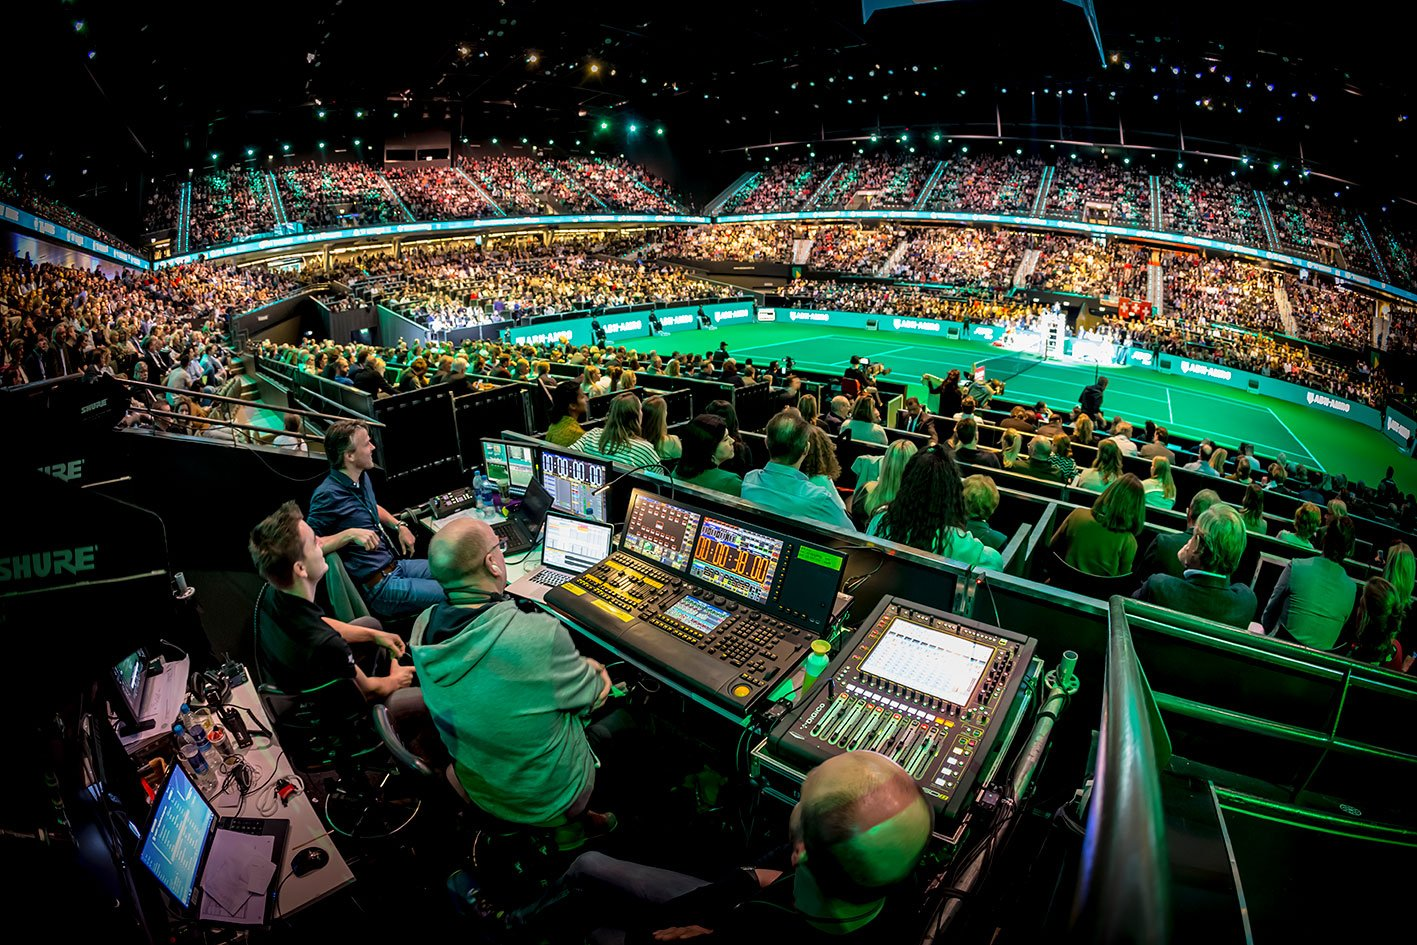 abn-amro-tennis-ampco-flashight-rental-lights-audio-huren